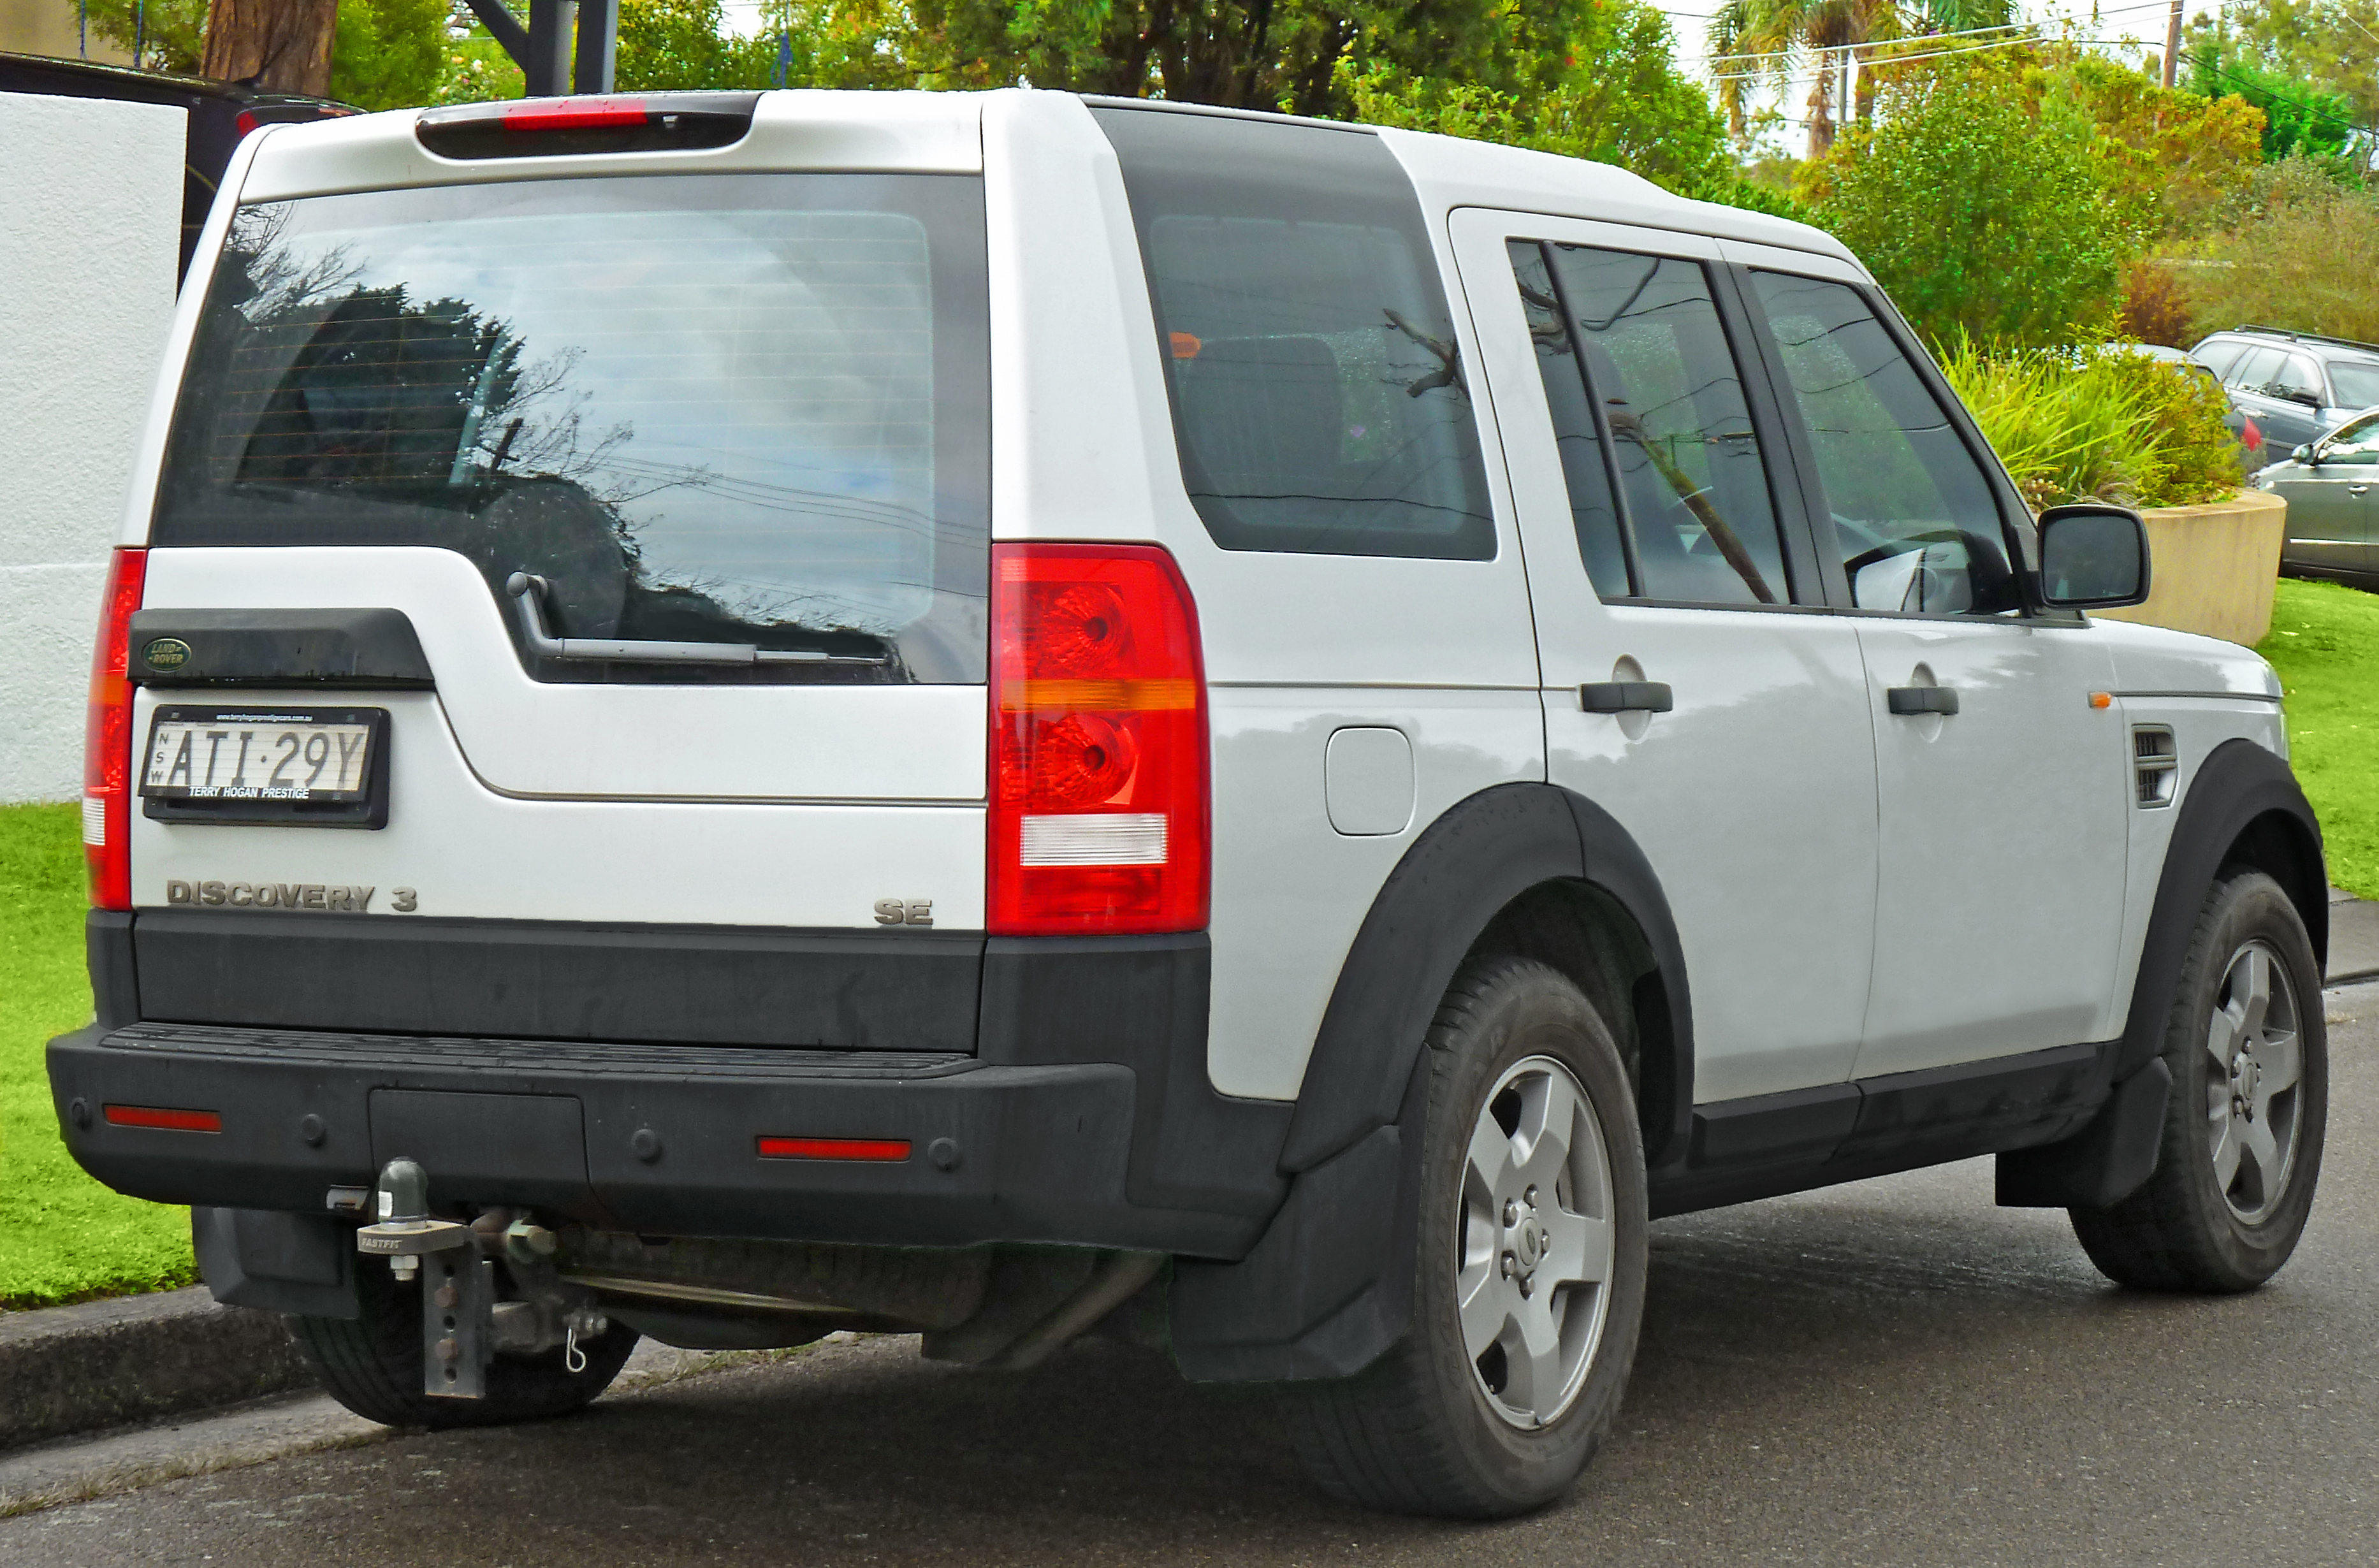 2005 Land Rover Discovery 3 #2